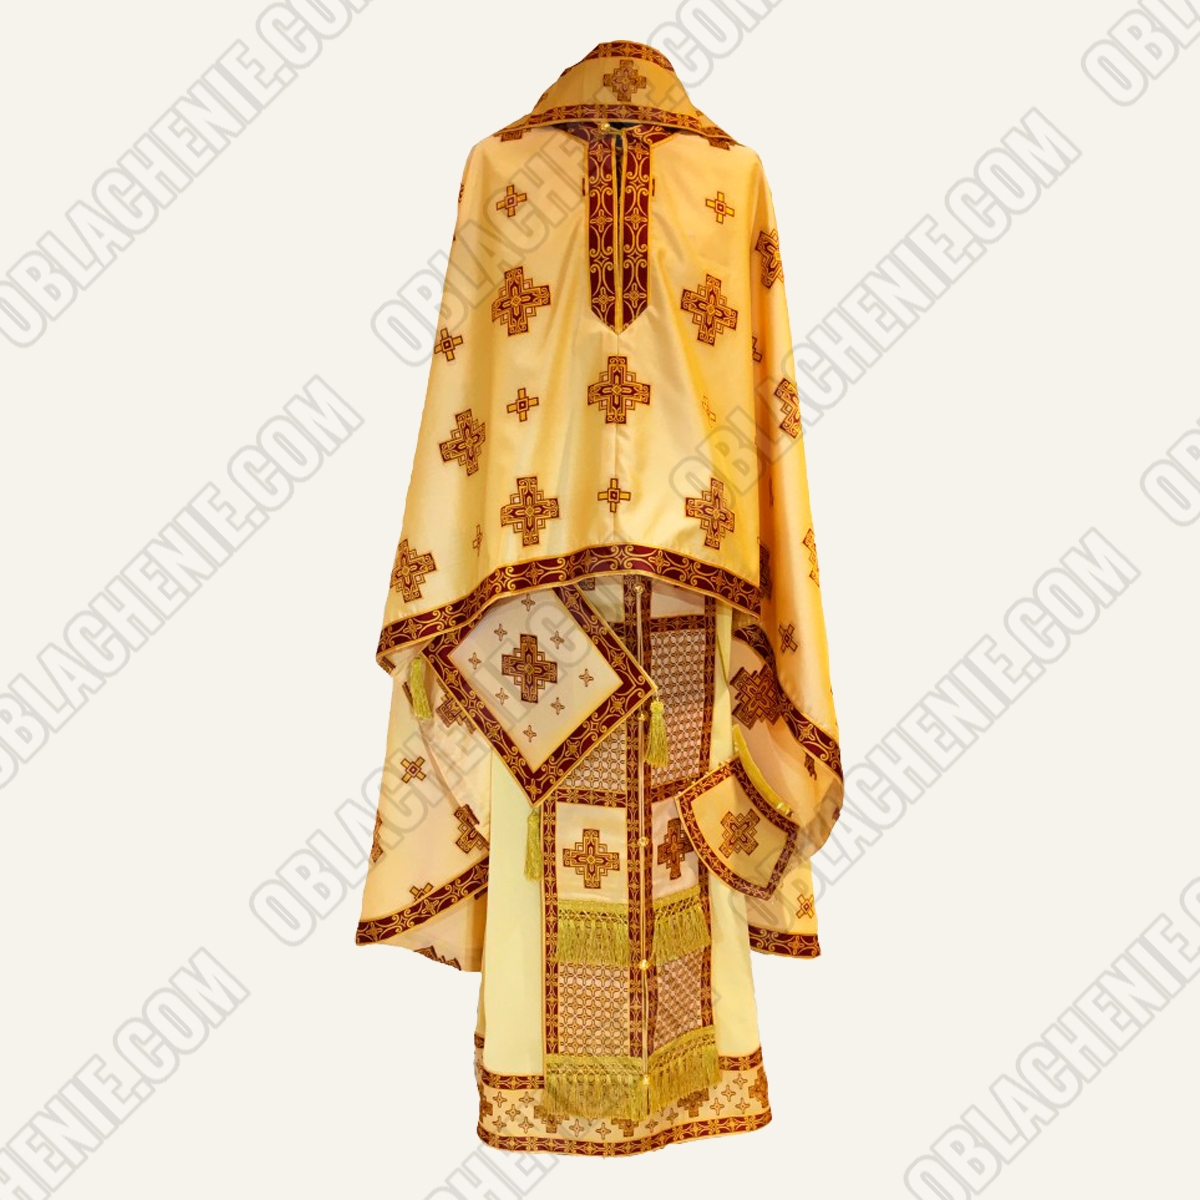 PRIEST'S VESTMENTS 11046